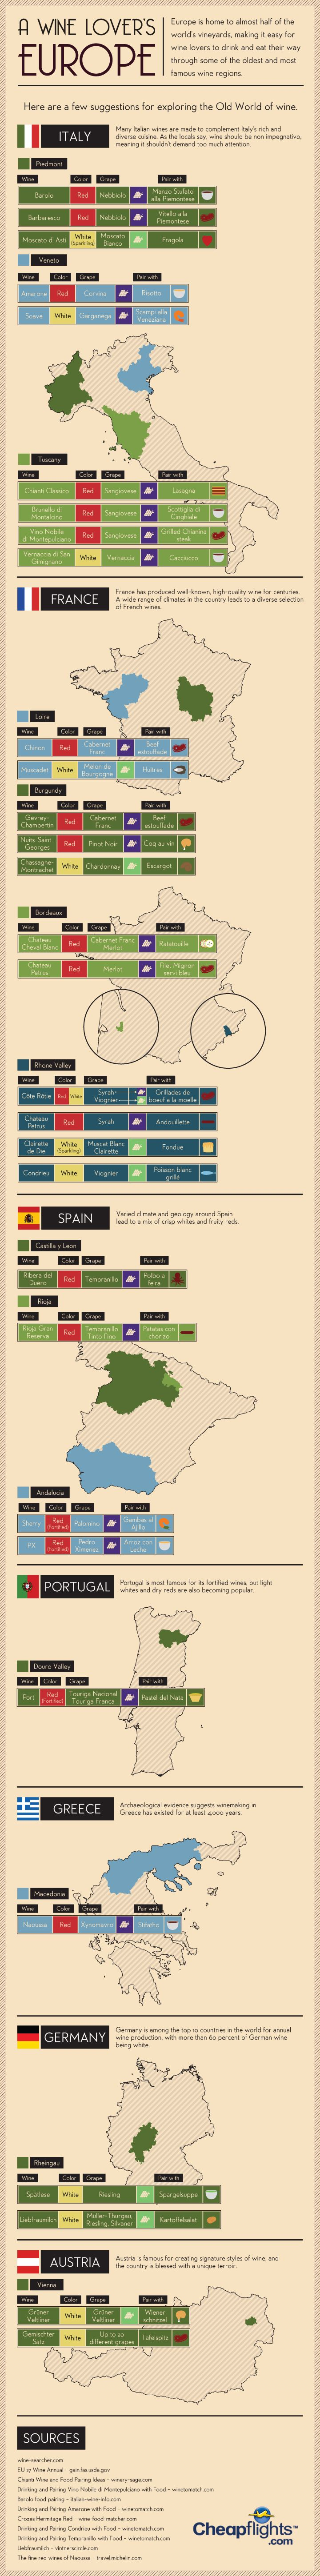 Wine Lover Infographic - A Country-By-Country Wine Lover's Guide To Europe